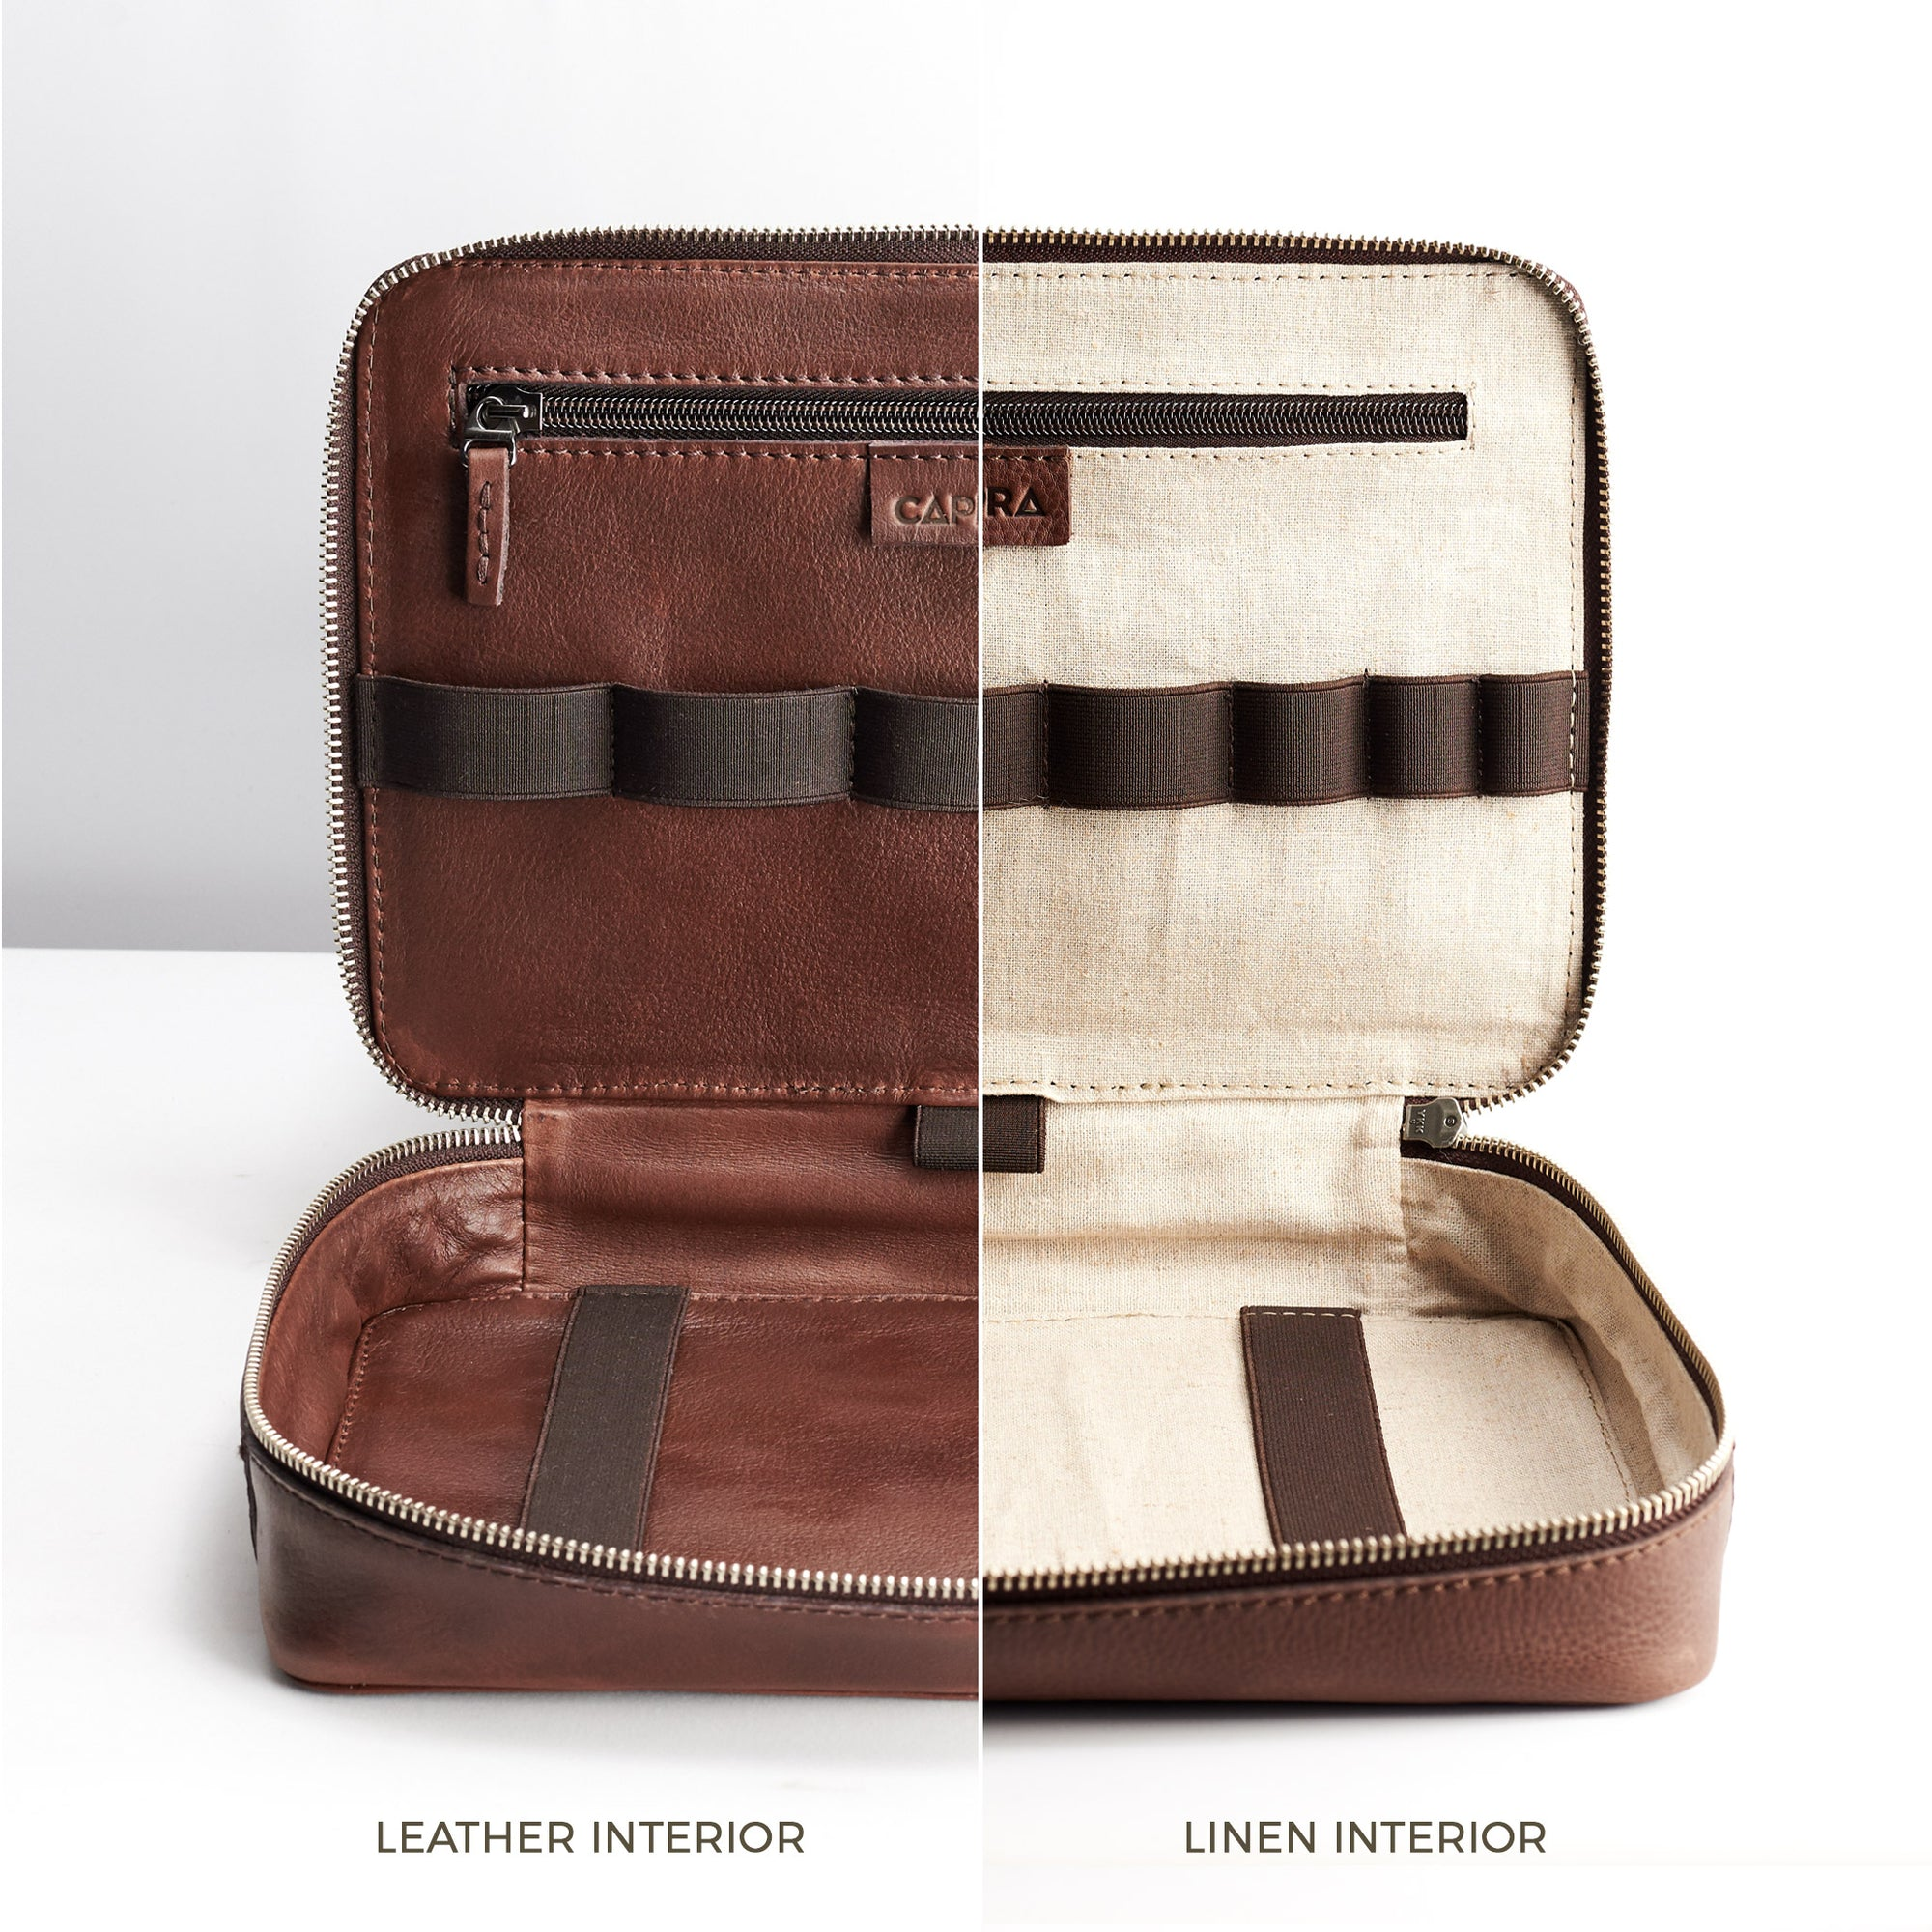 Brown leather gadget bag, tech dopp kit, electronic organizer. Fits iPad Pro with Apple pencil.